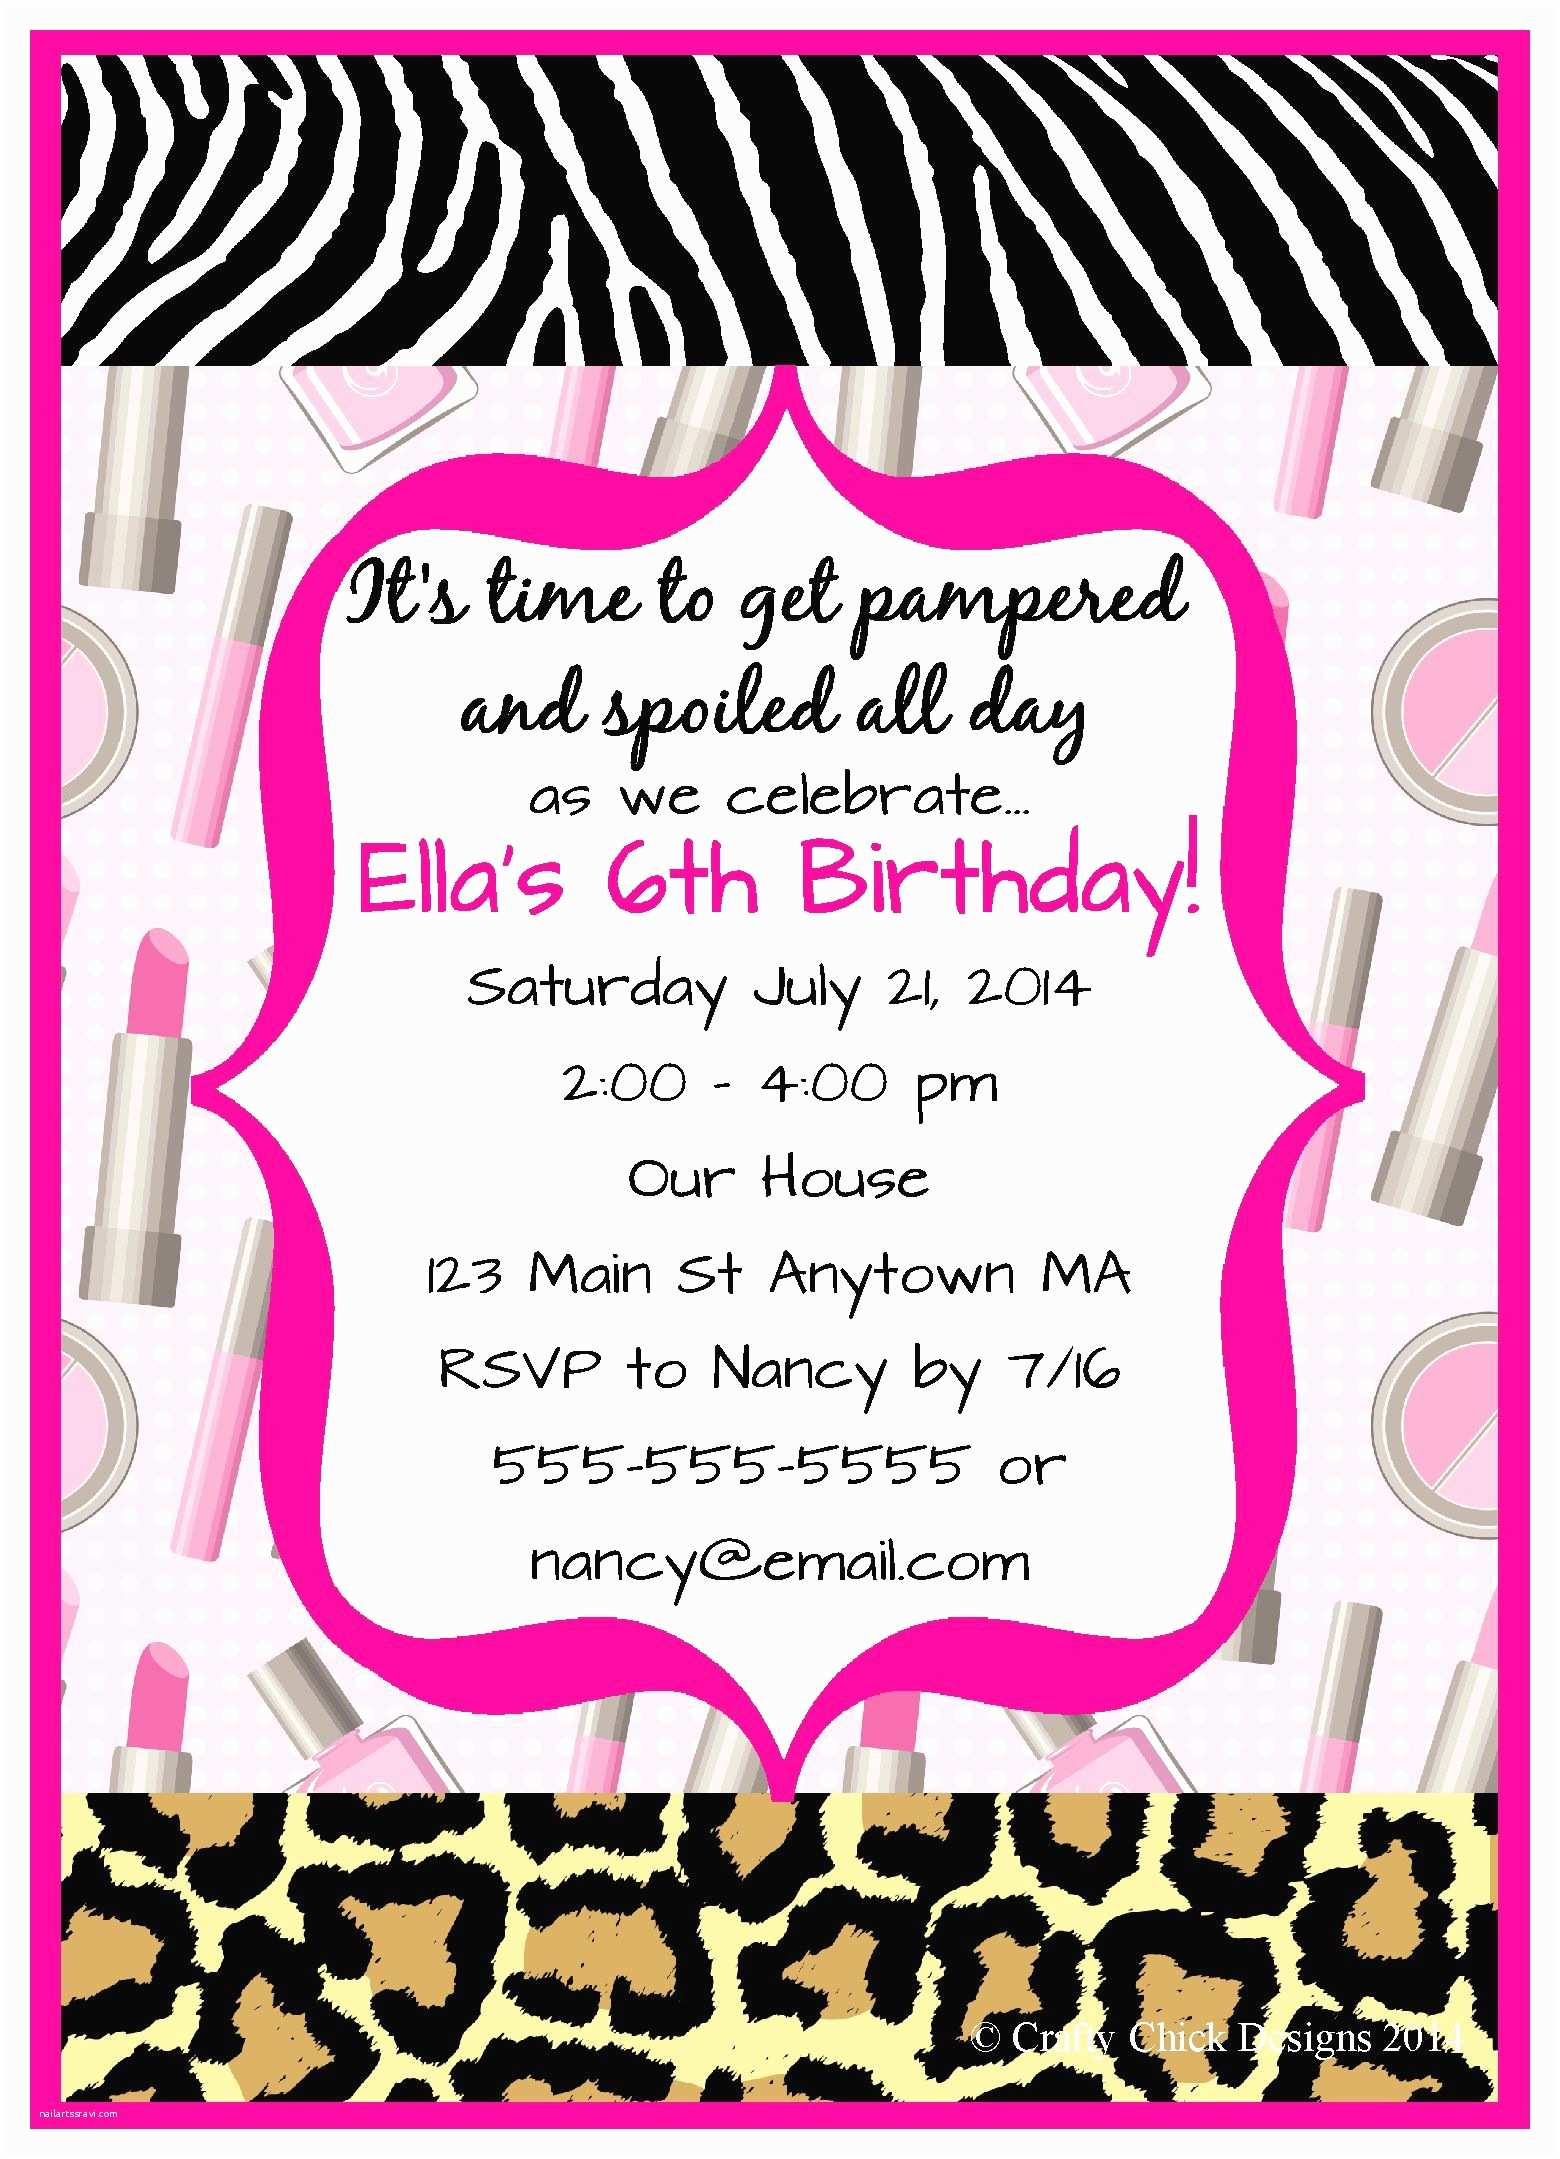 Design Party Invitations Birthday Invitations Design Free Birthday Invitations